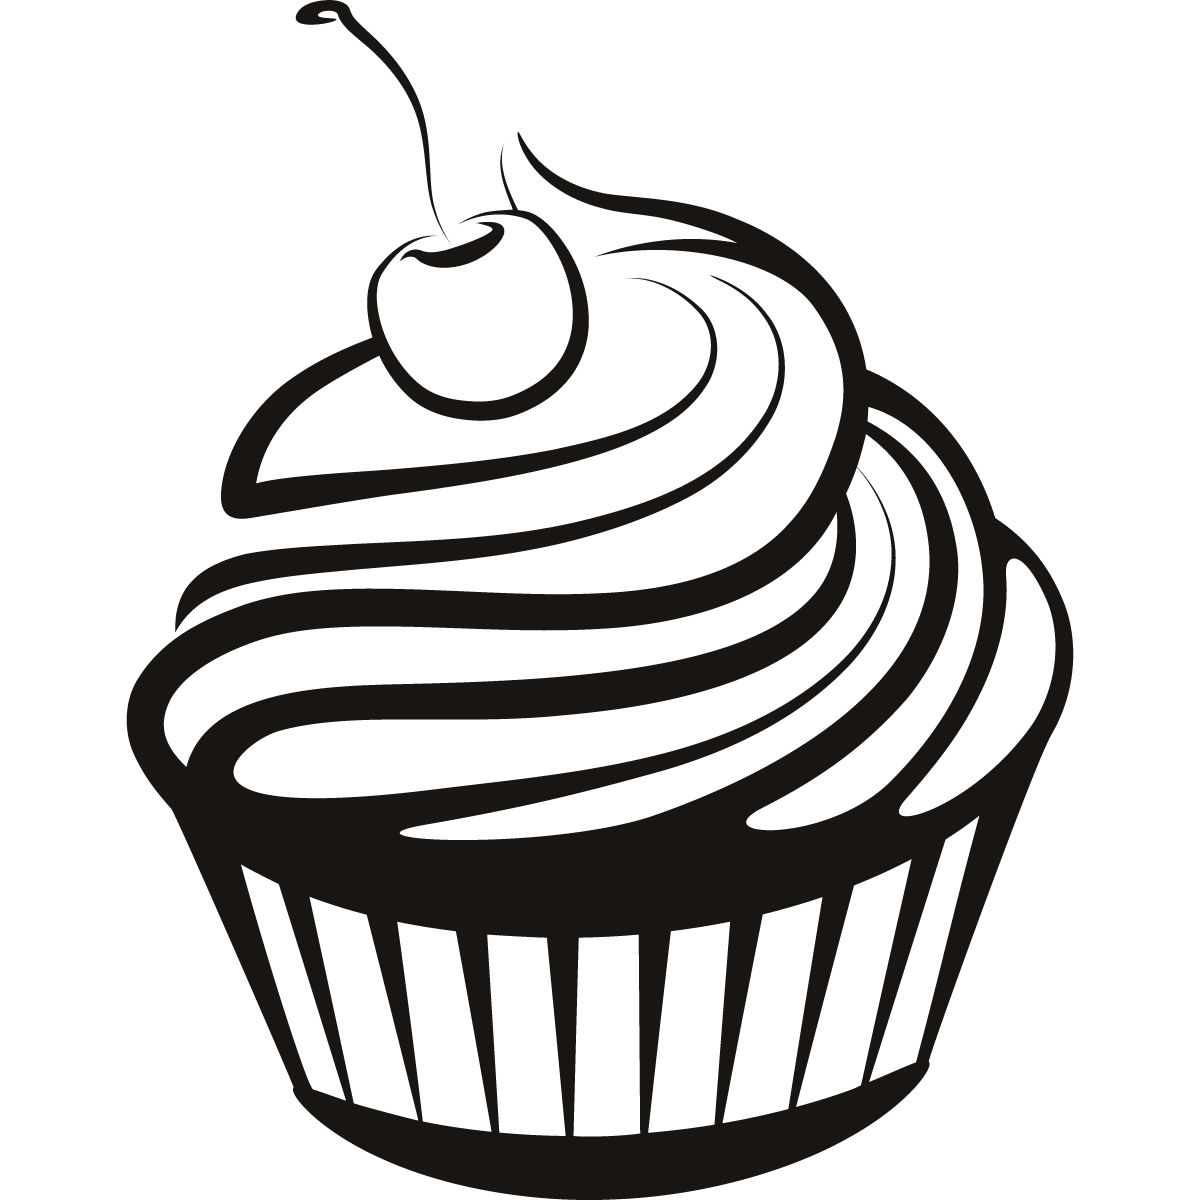 Cupcake black and white cupcake drawings and cupcakes